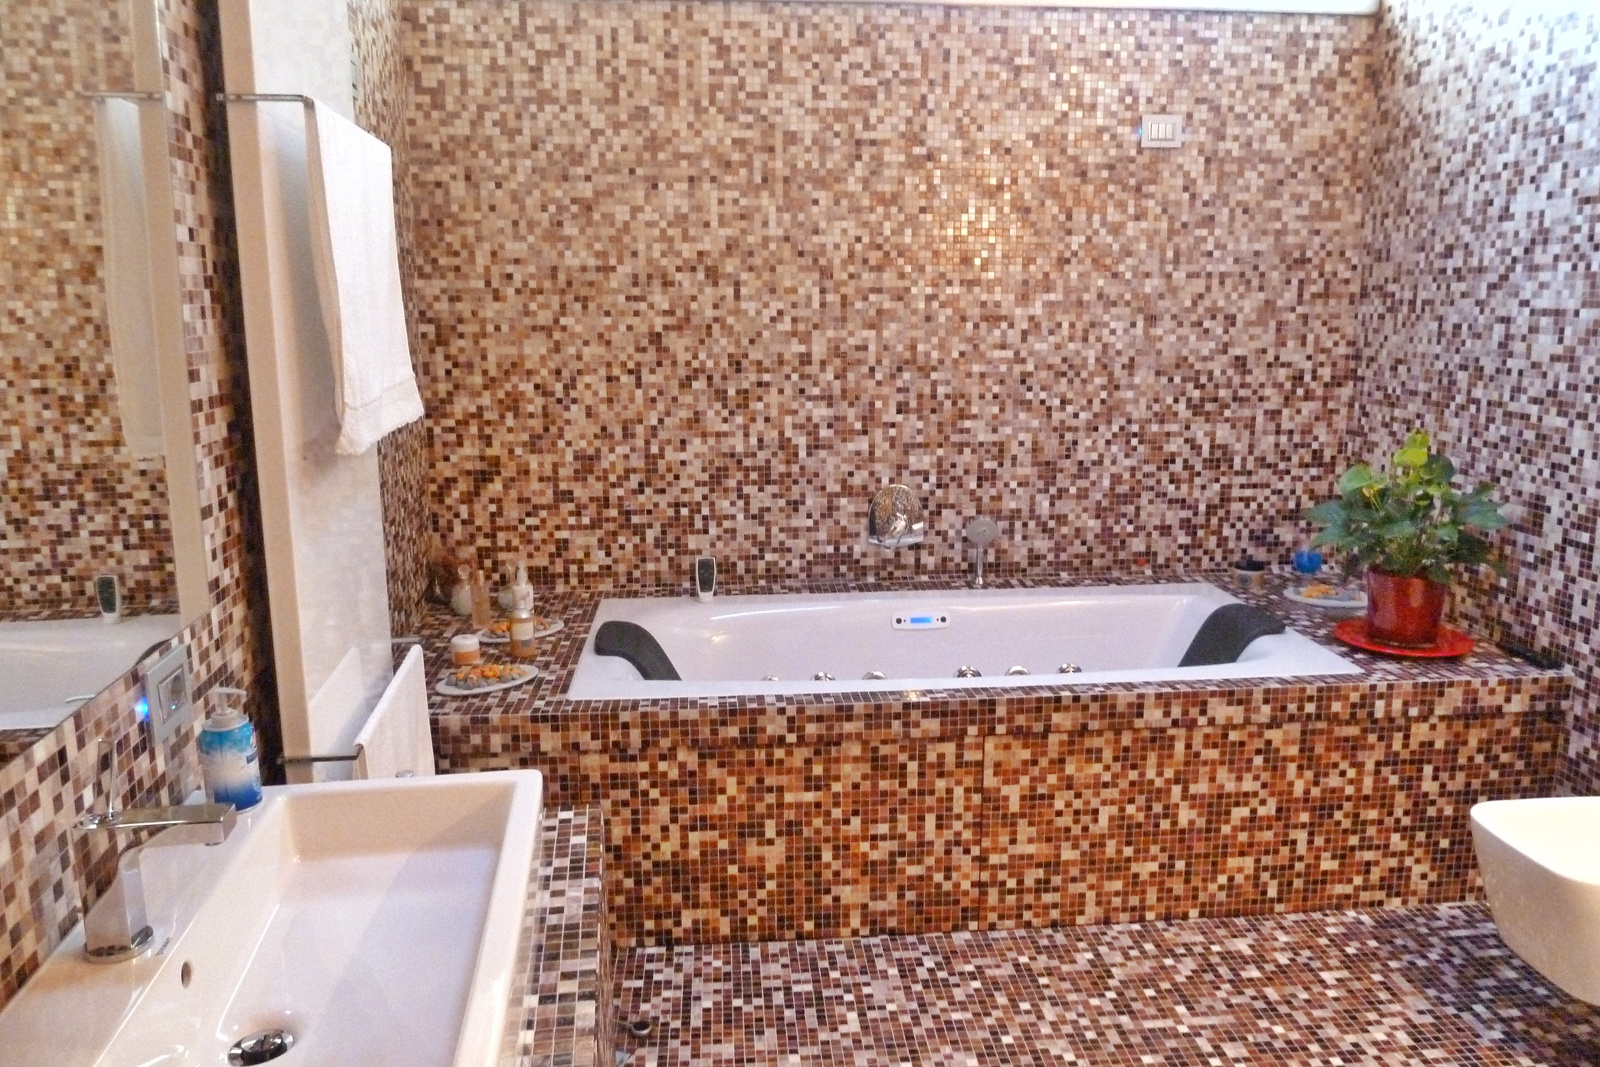 Bagno moderno in mosaico